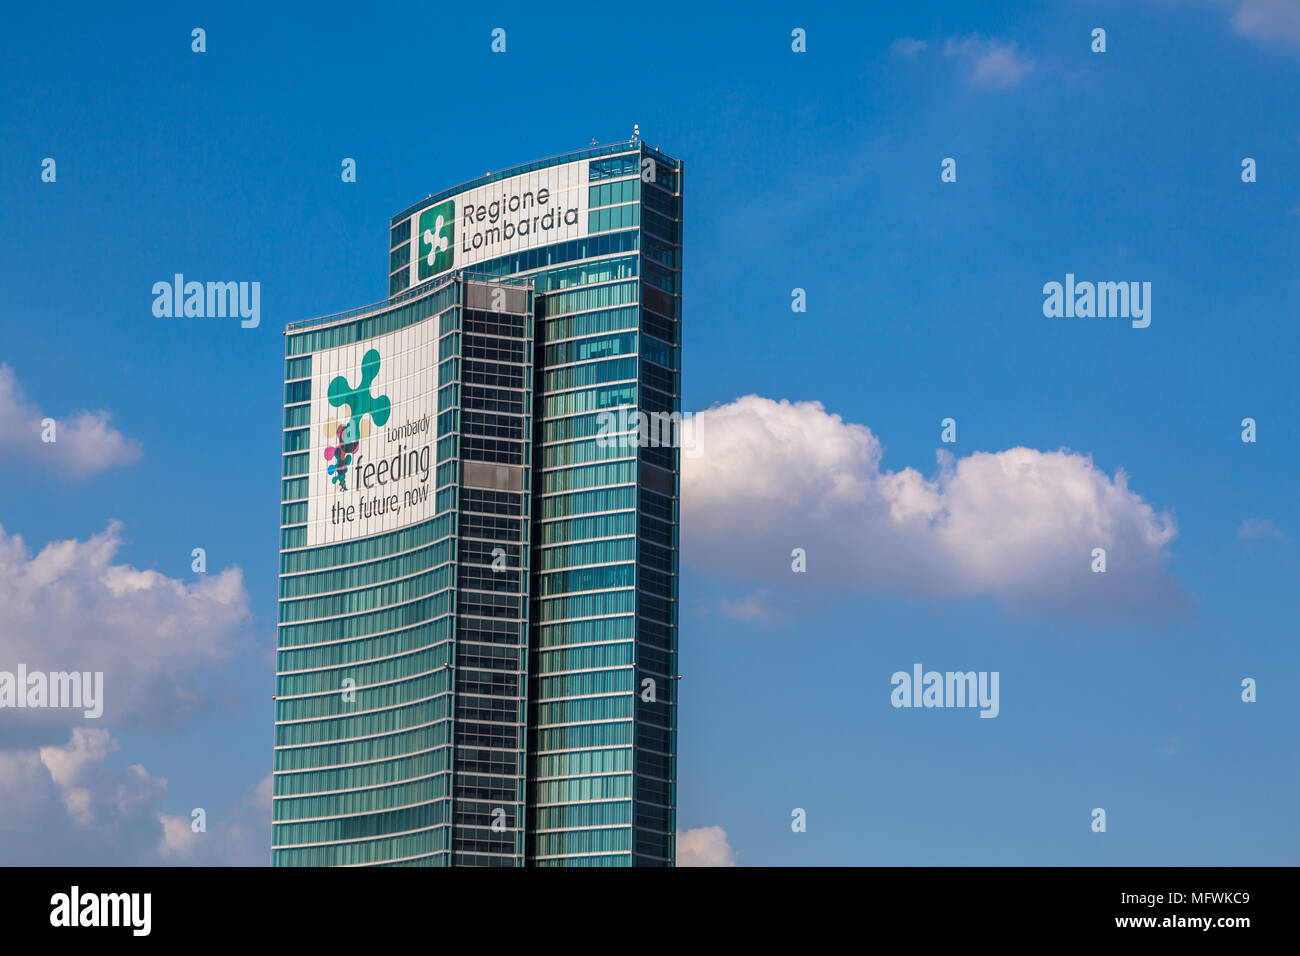 Palazzo Lombardia, Milan, italy Stock Photo